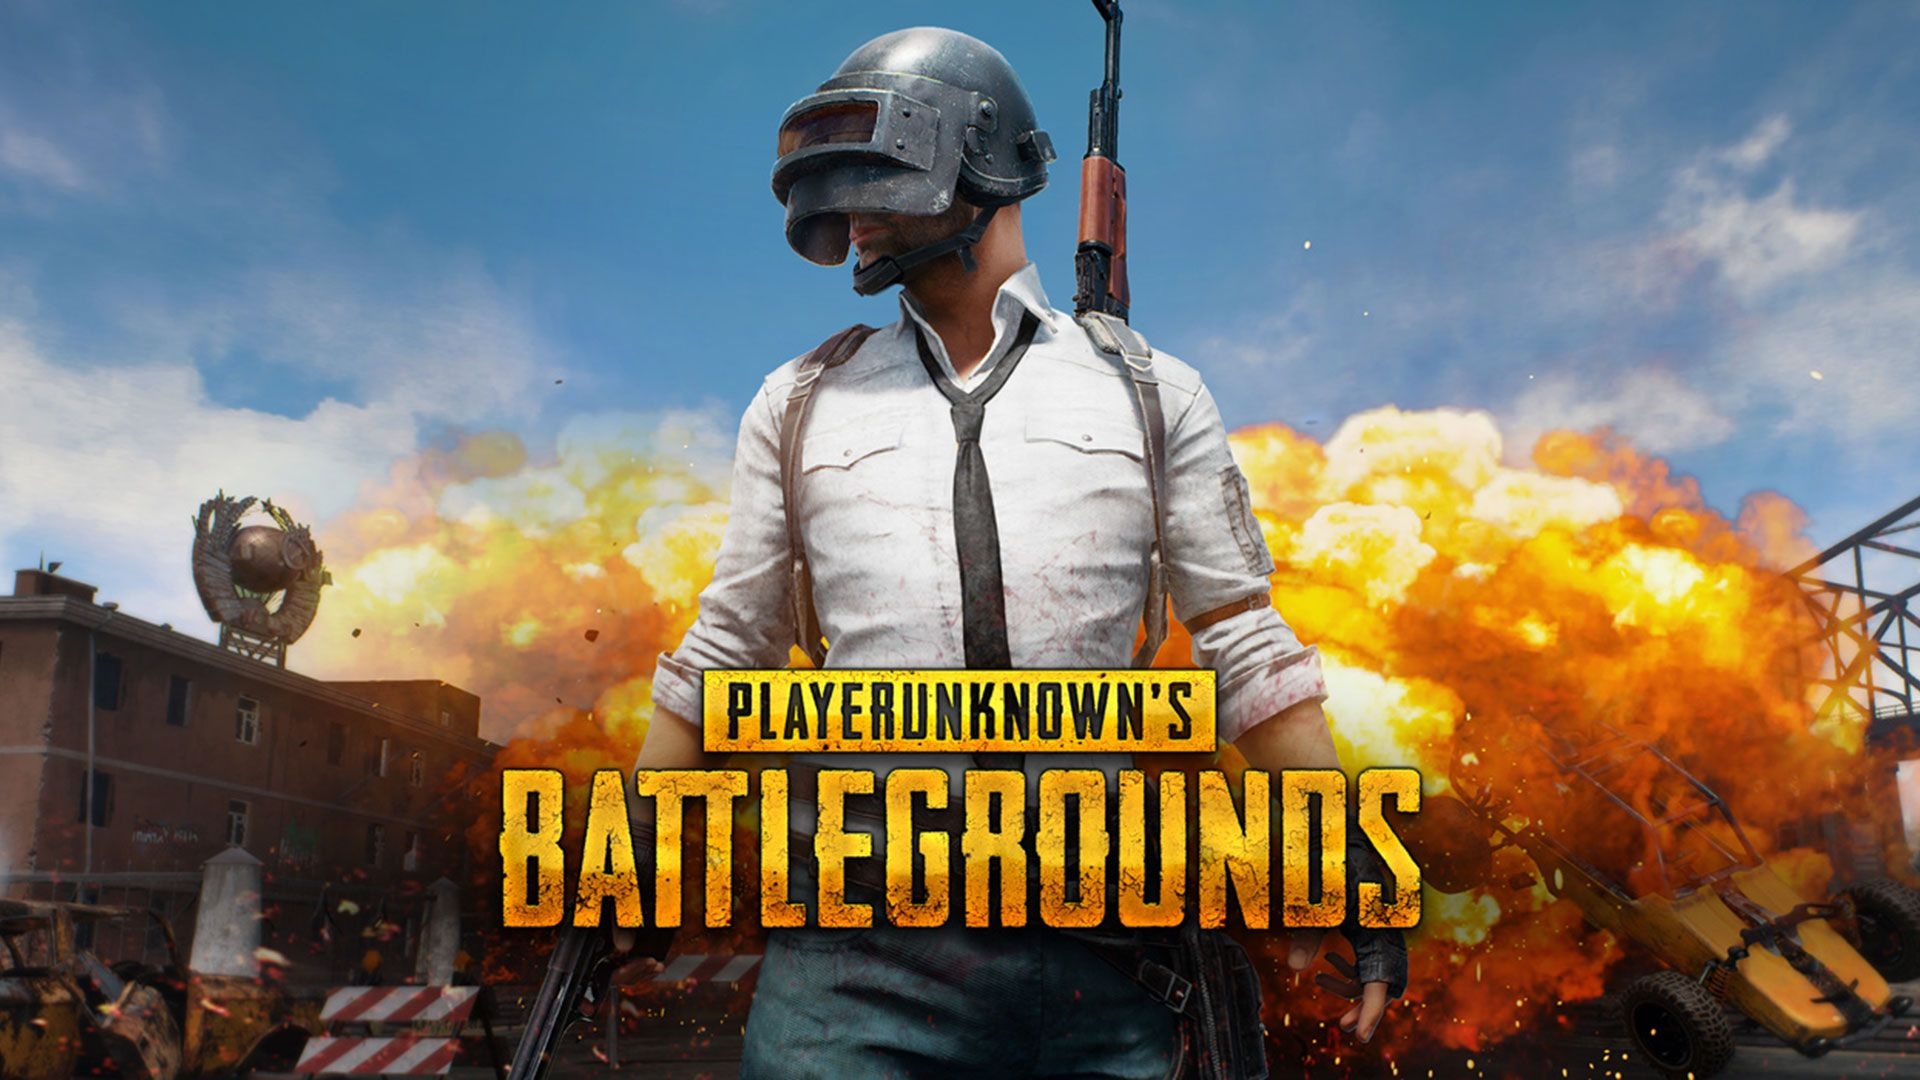 Wallpapers Pubg Full Hd Em Papel De Parede 1080p HD